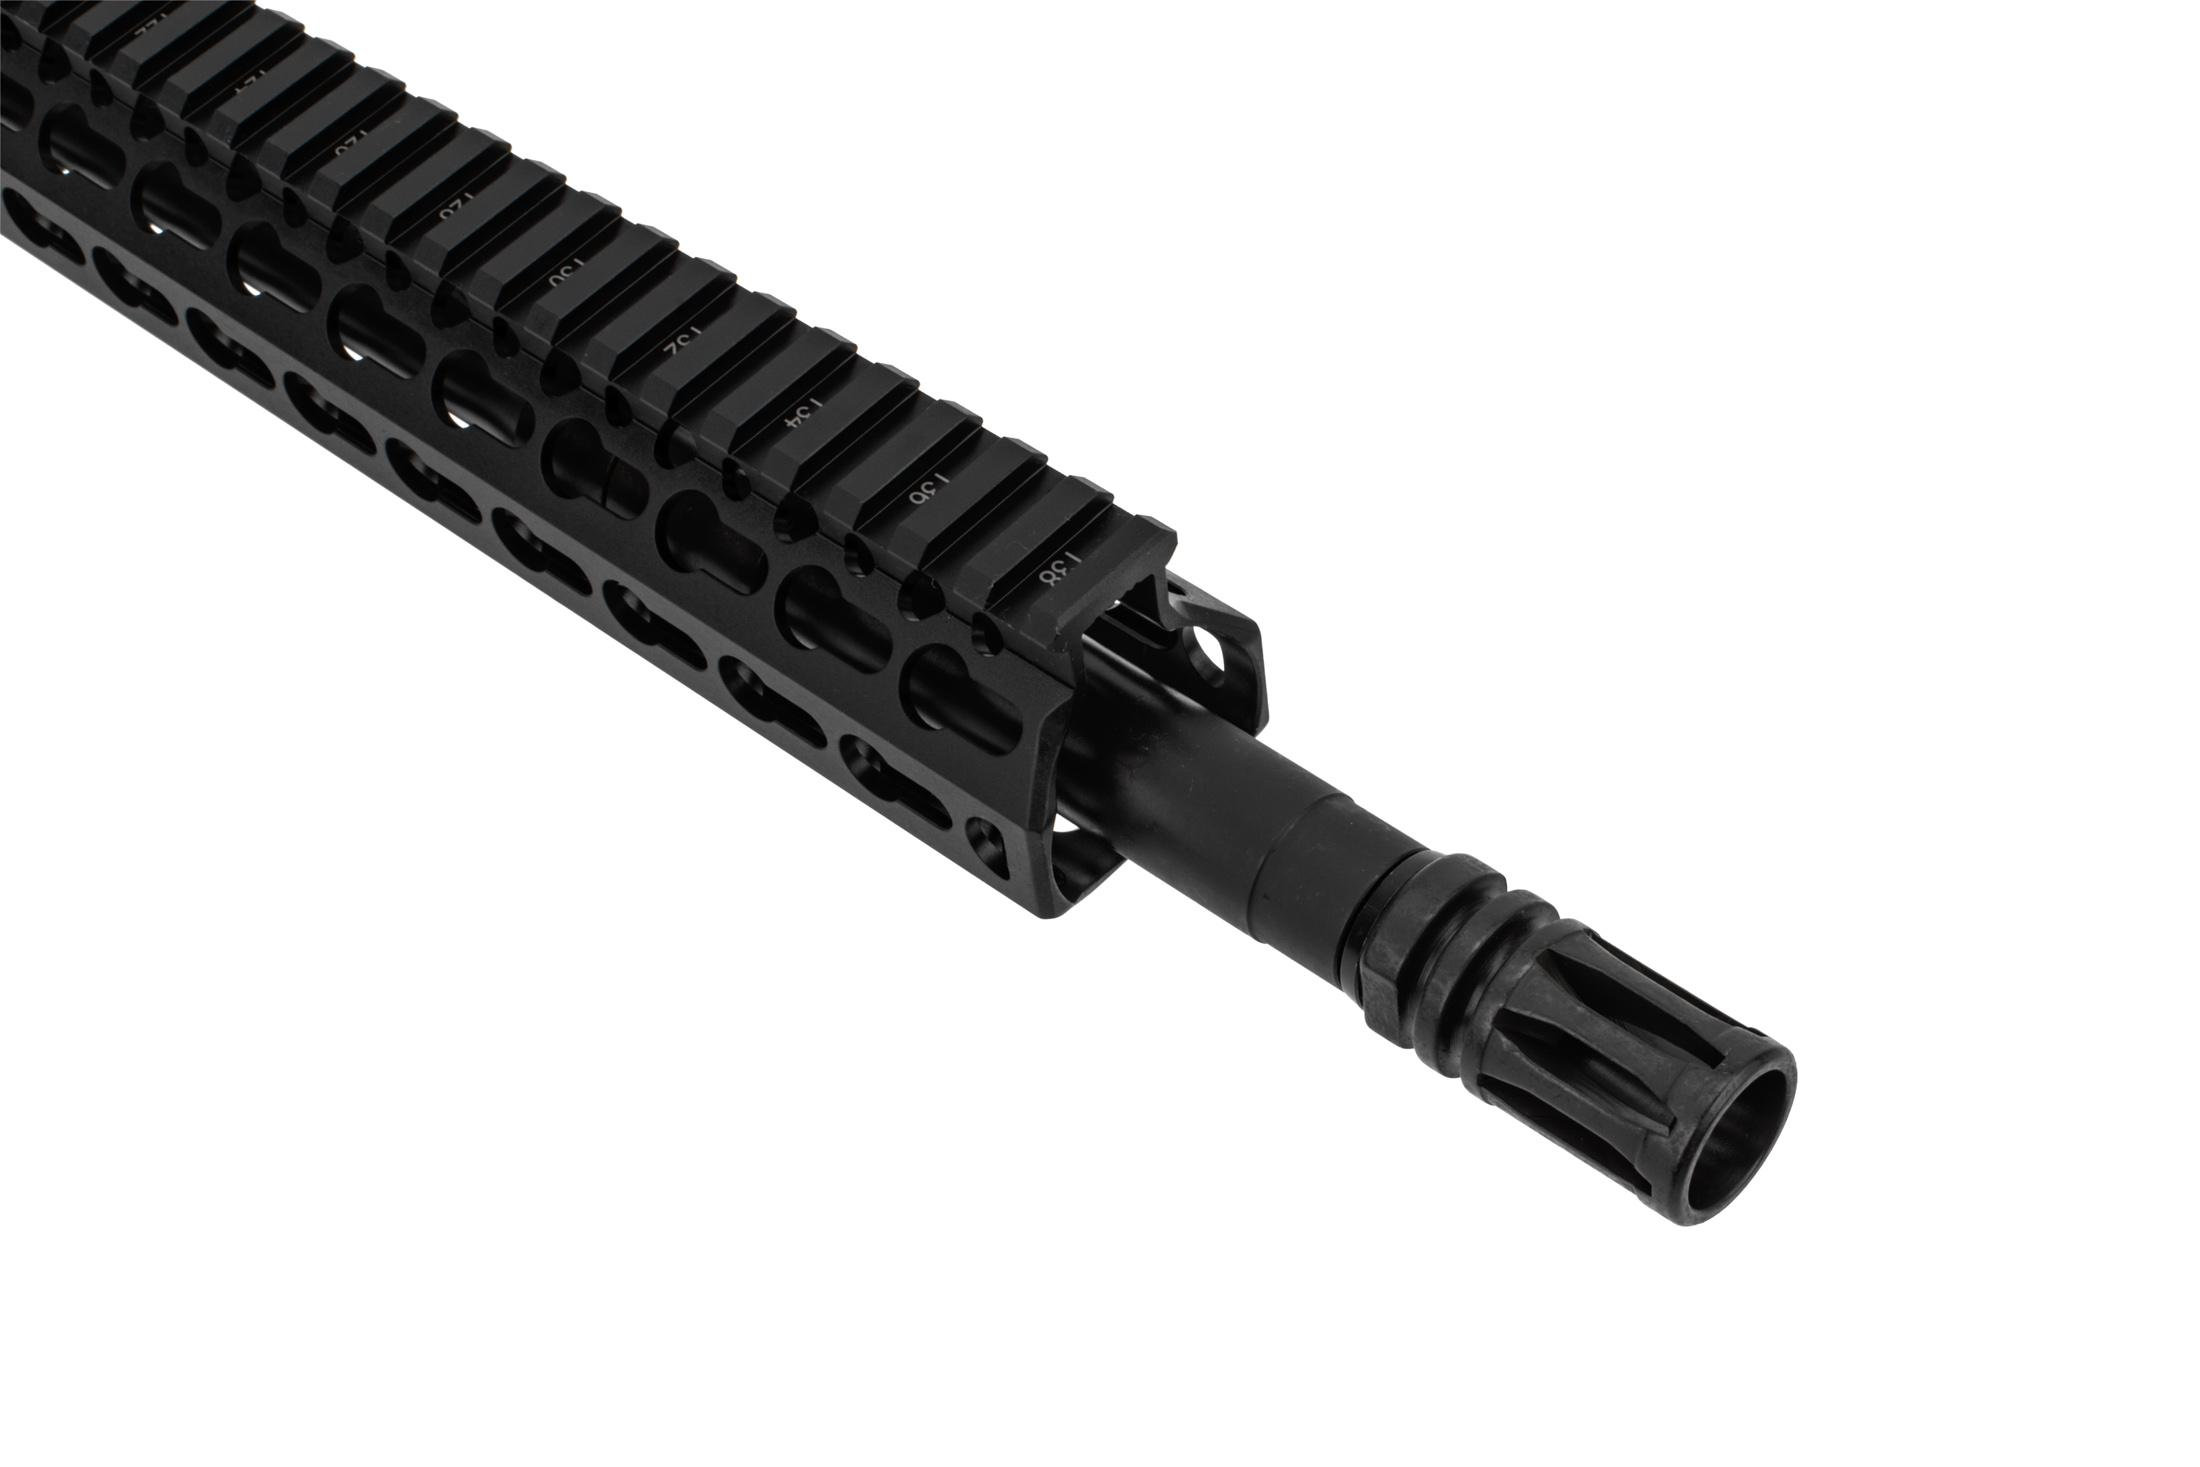 BCM MK2 AR 15 barreled upper receiver 12.5 with KMR features an A2 flash hider